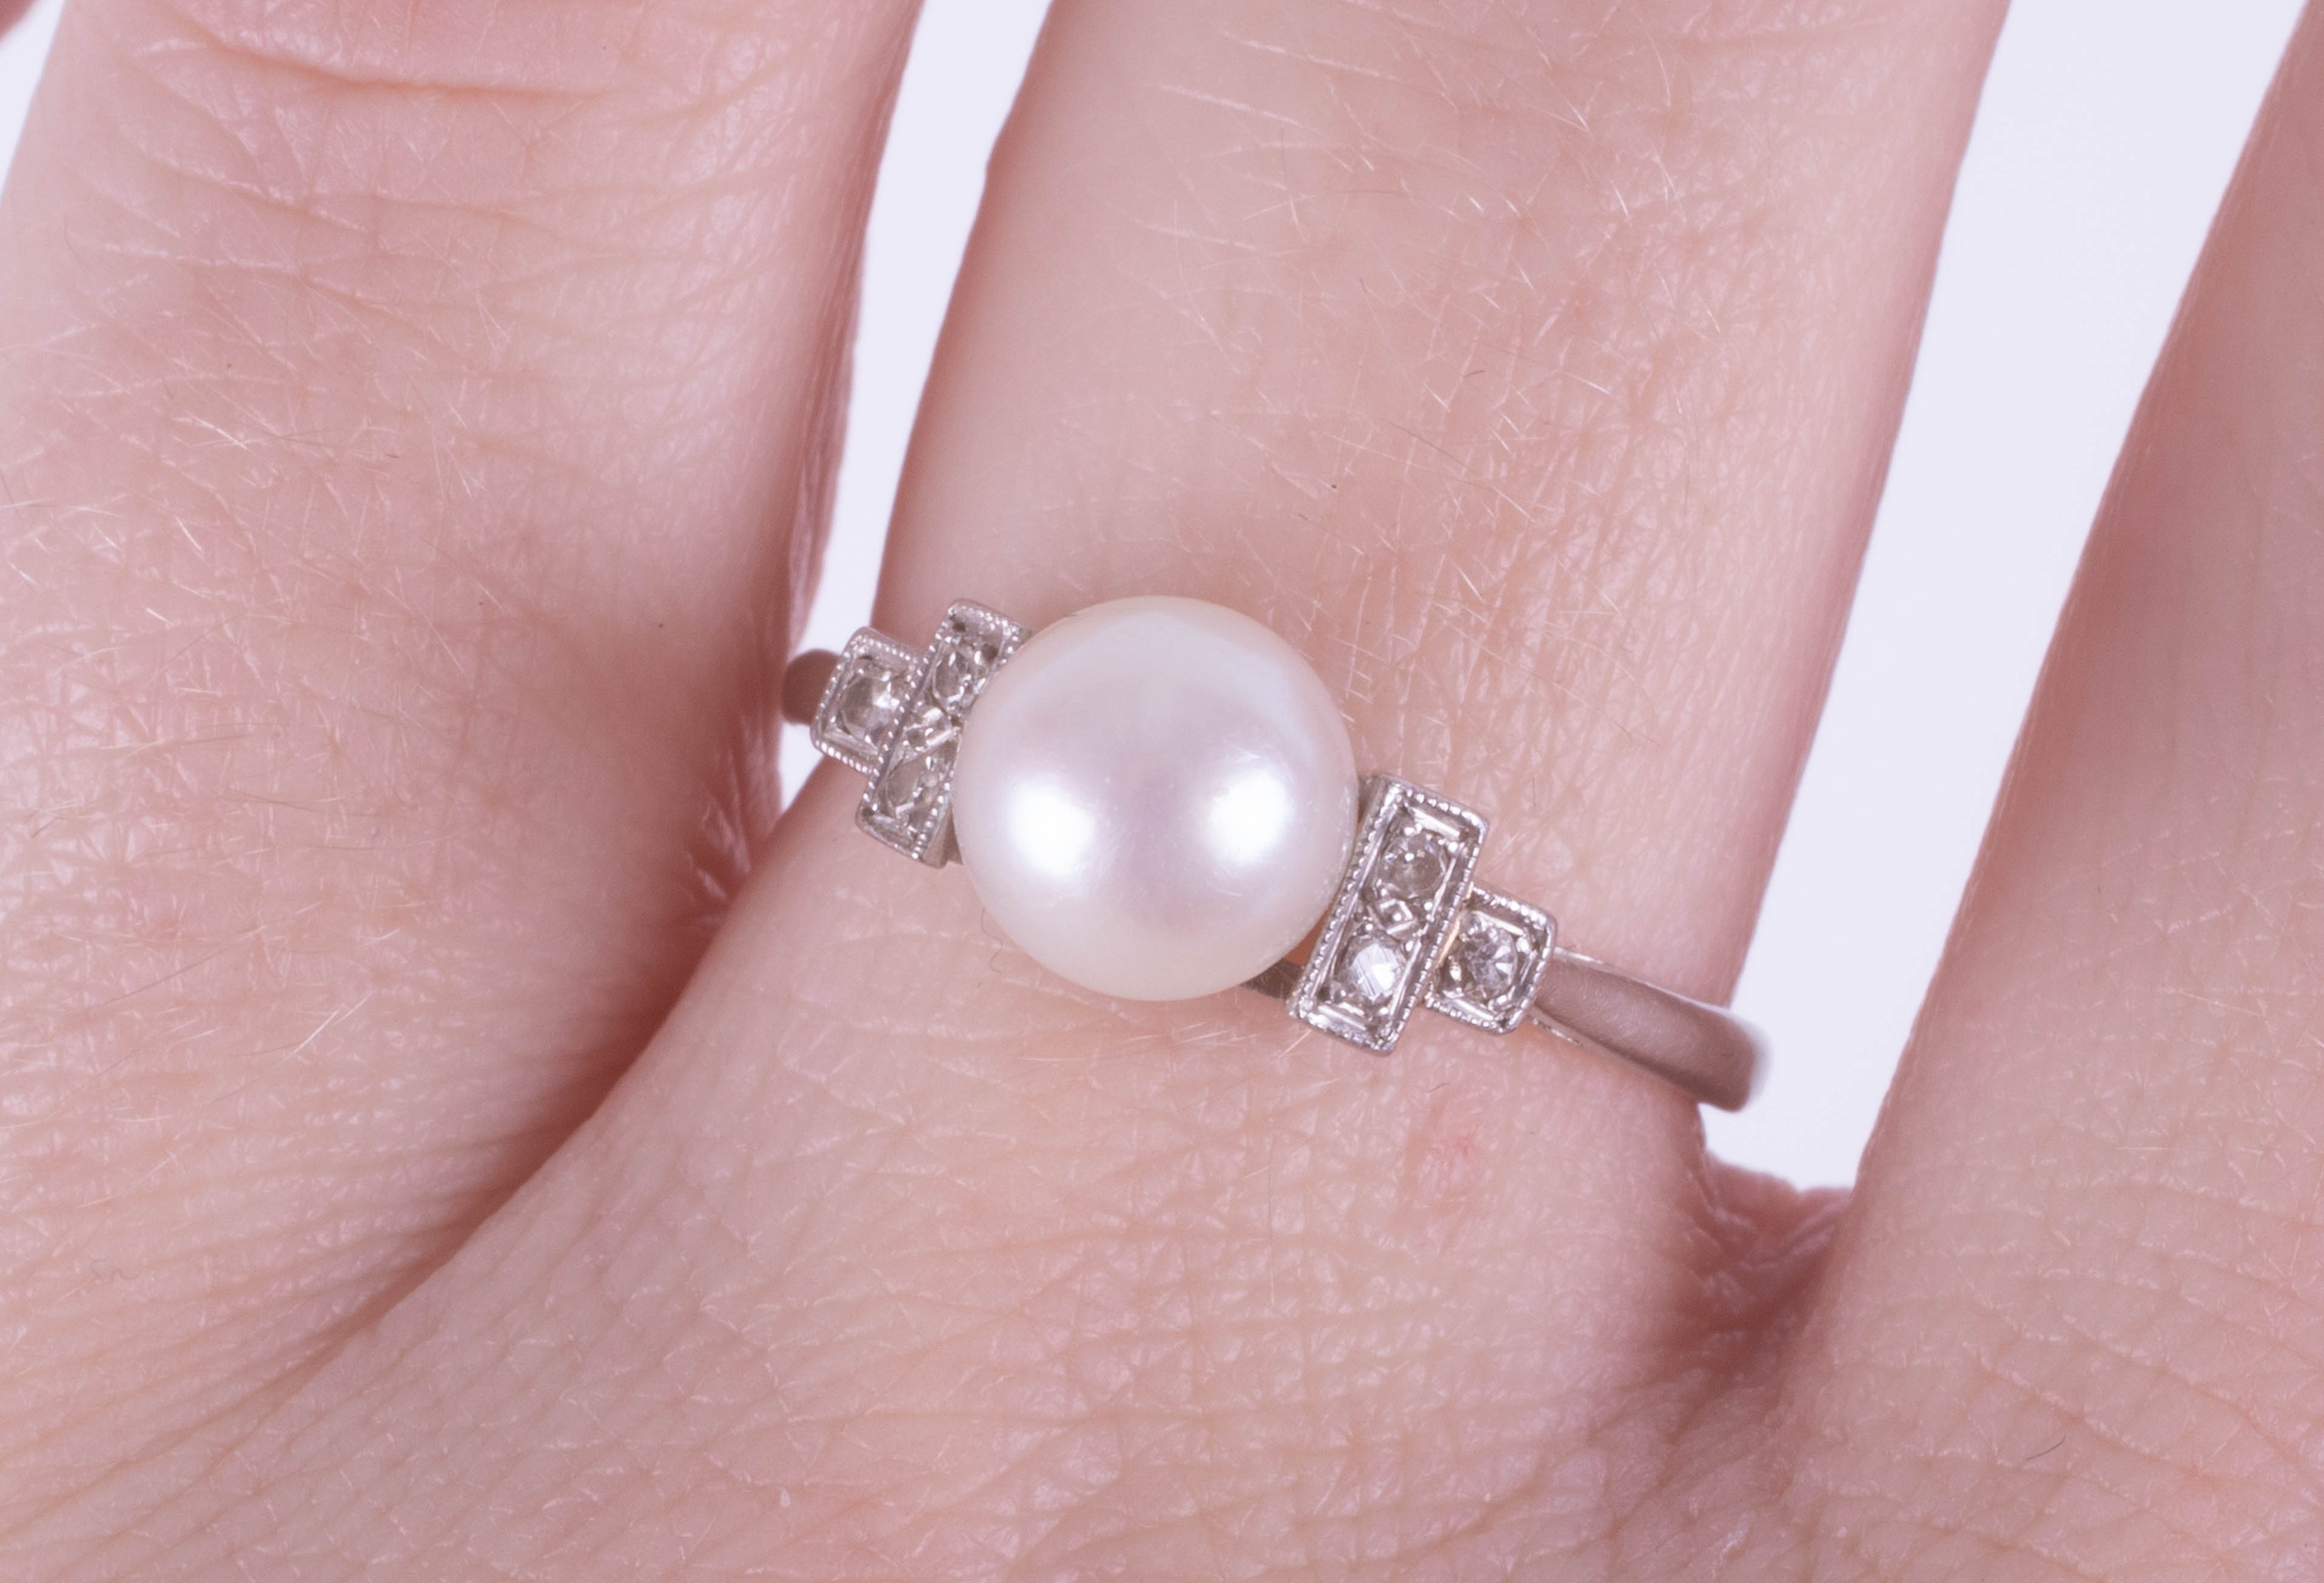 A platinum ring set with a single pearl and diamonds, size O. - Image 2 of 2